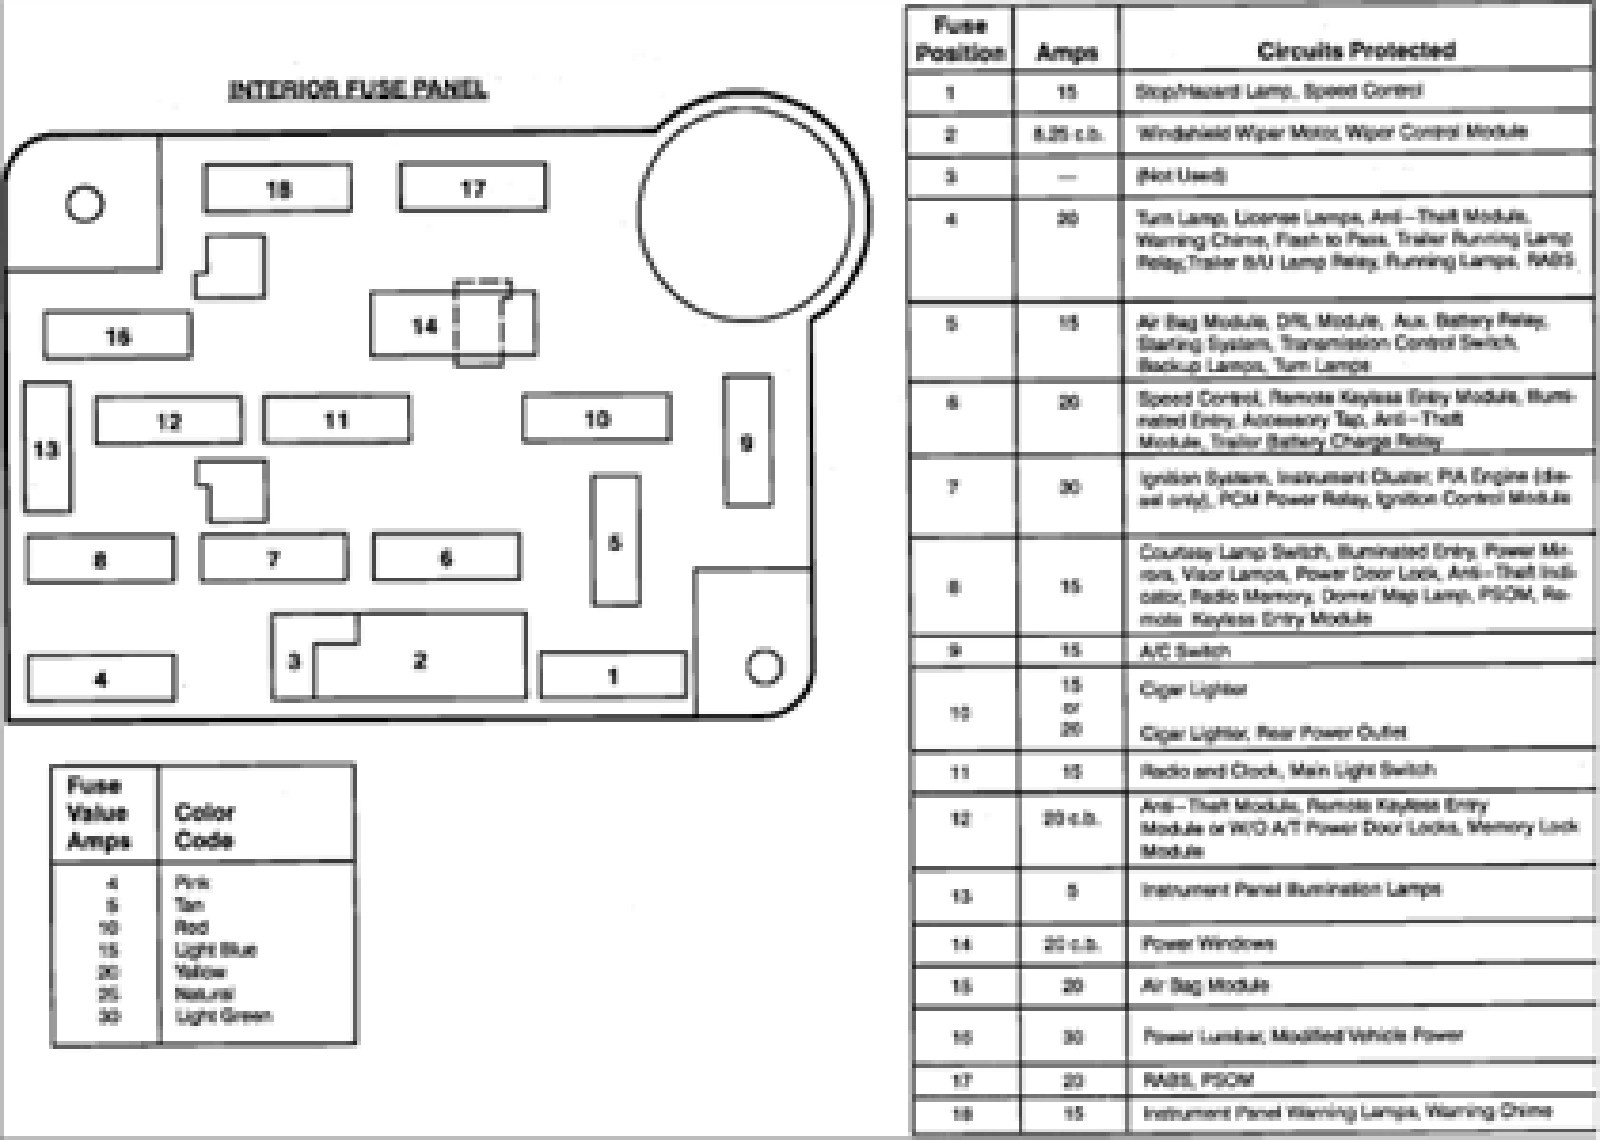 hight resolution of 1995 gmc fuse box diagram wiring diagram todays 2008 gmc fuse box 95 gmc fuse box